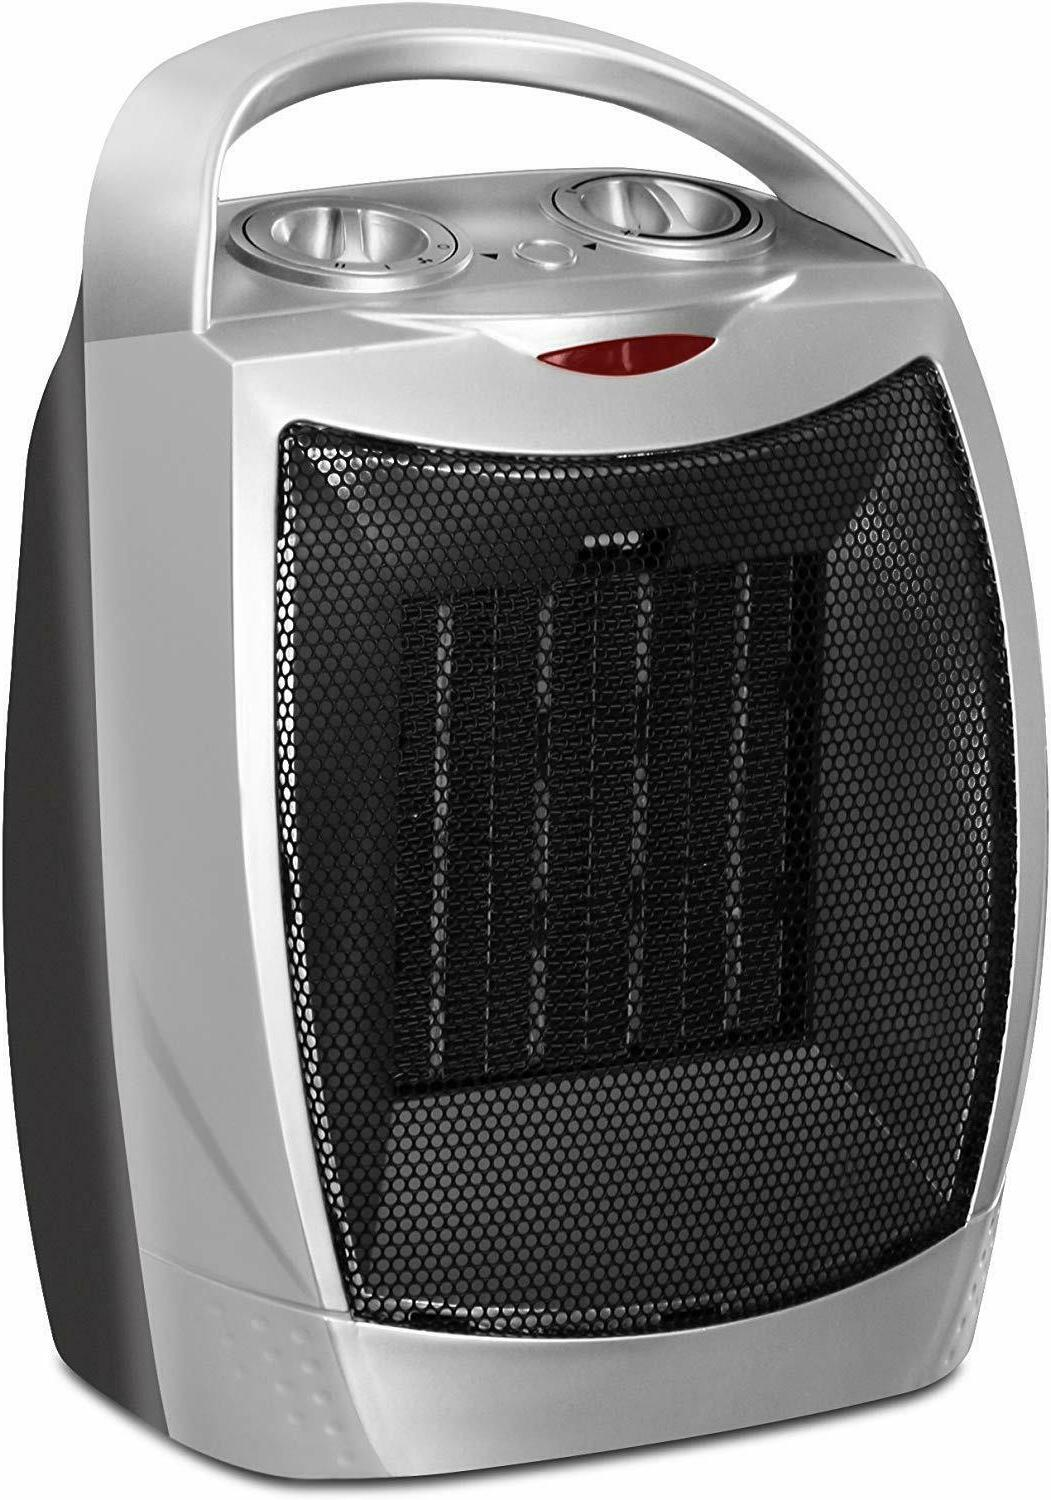 ceramic space heater 750w 1500w adjustable thermostat